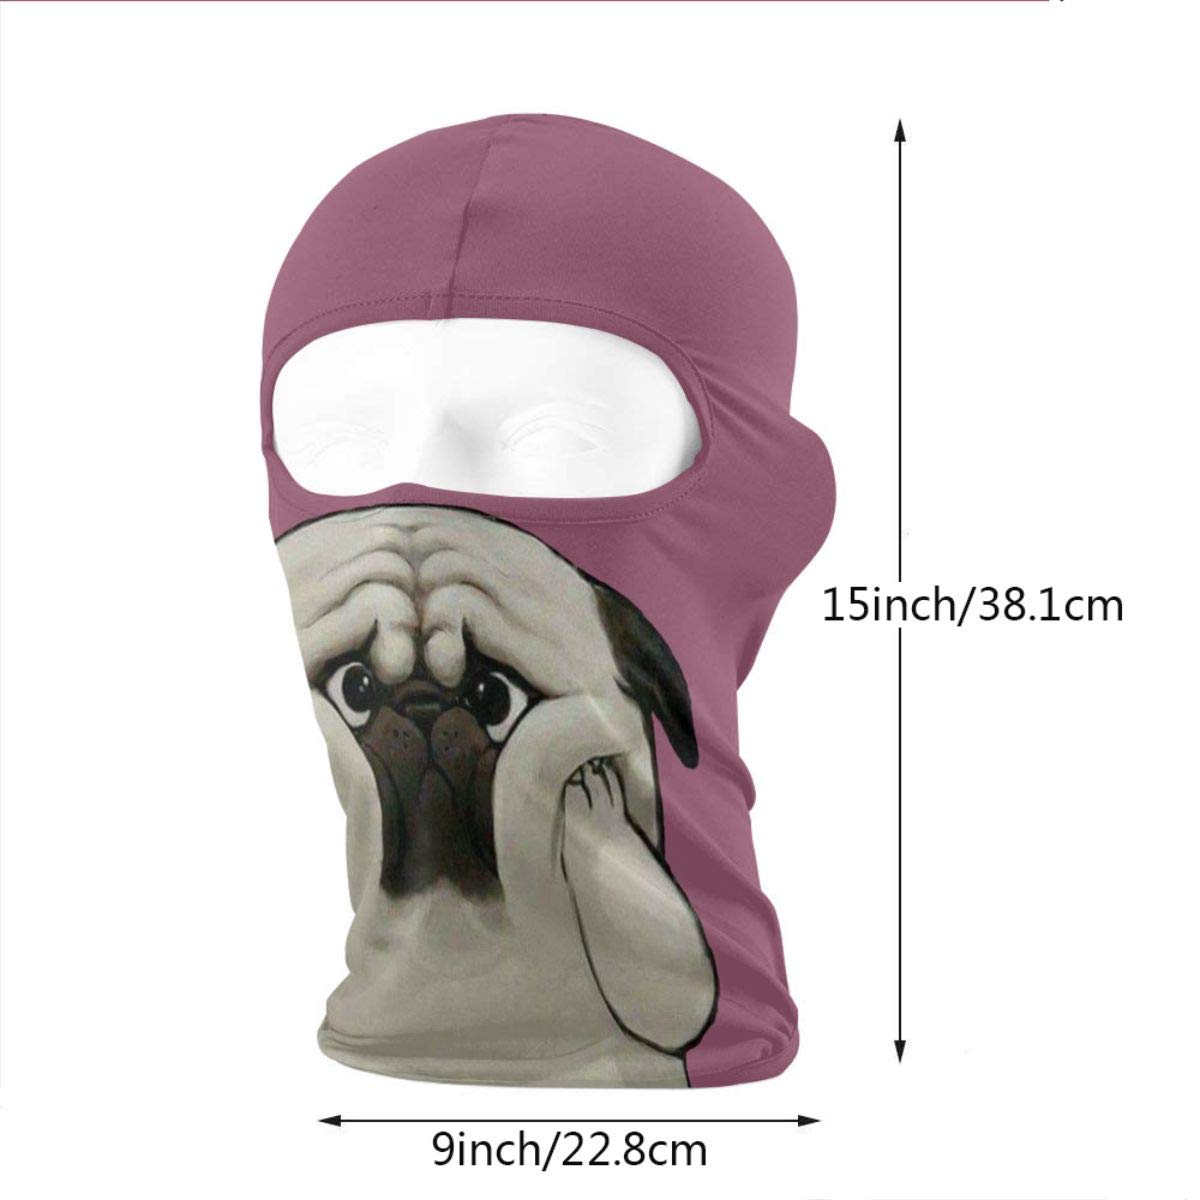 Wind-Resistant Face Mask Lovely Dog Covers Face Winter Ski Mask Balaclava Hood